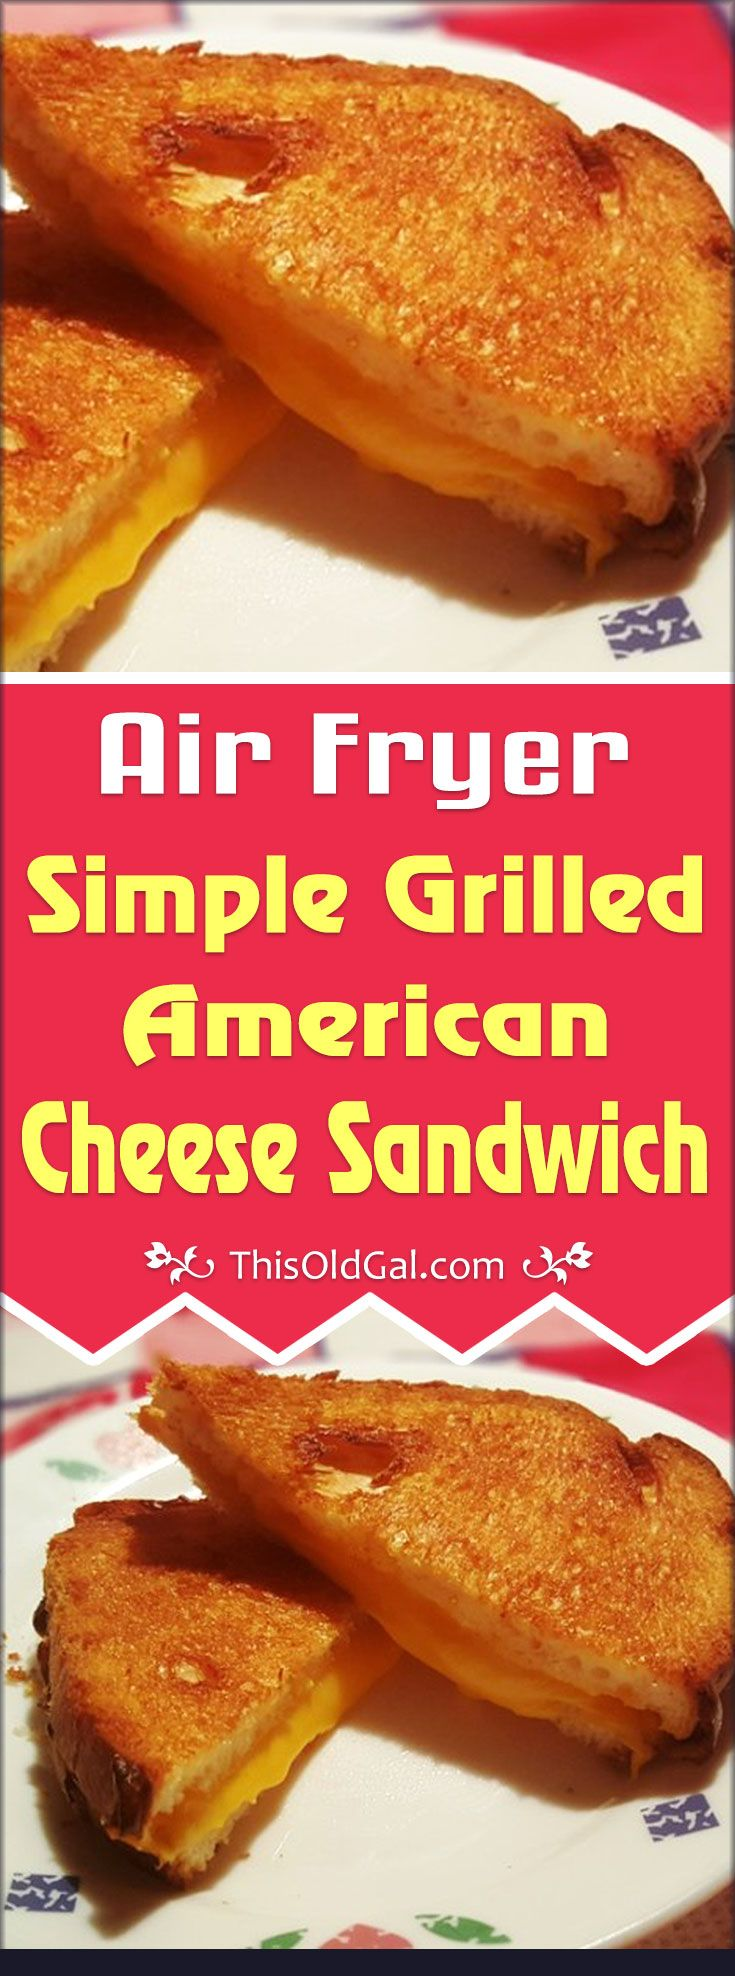 This Air Fryer Simple Grilled American Cheese Sandwich is ready in only a few minutes and has 50% less fat calories than using a Skillet! via This Old Gal